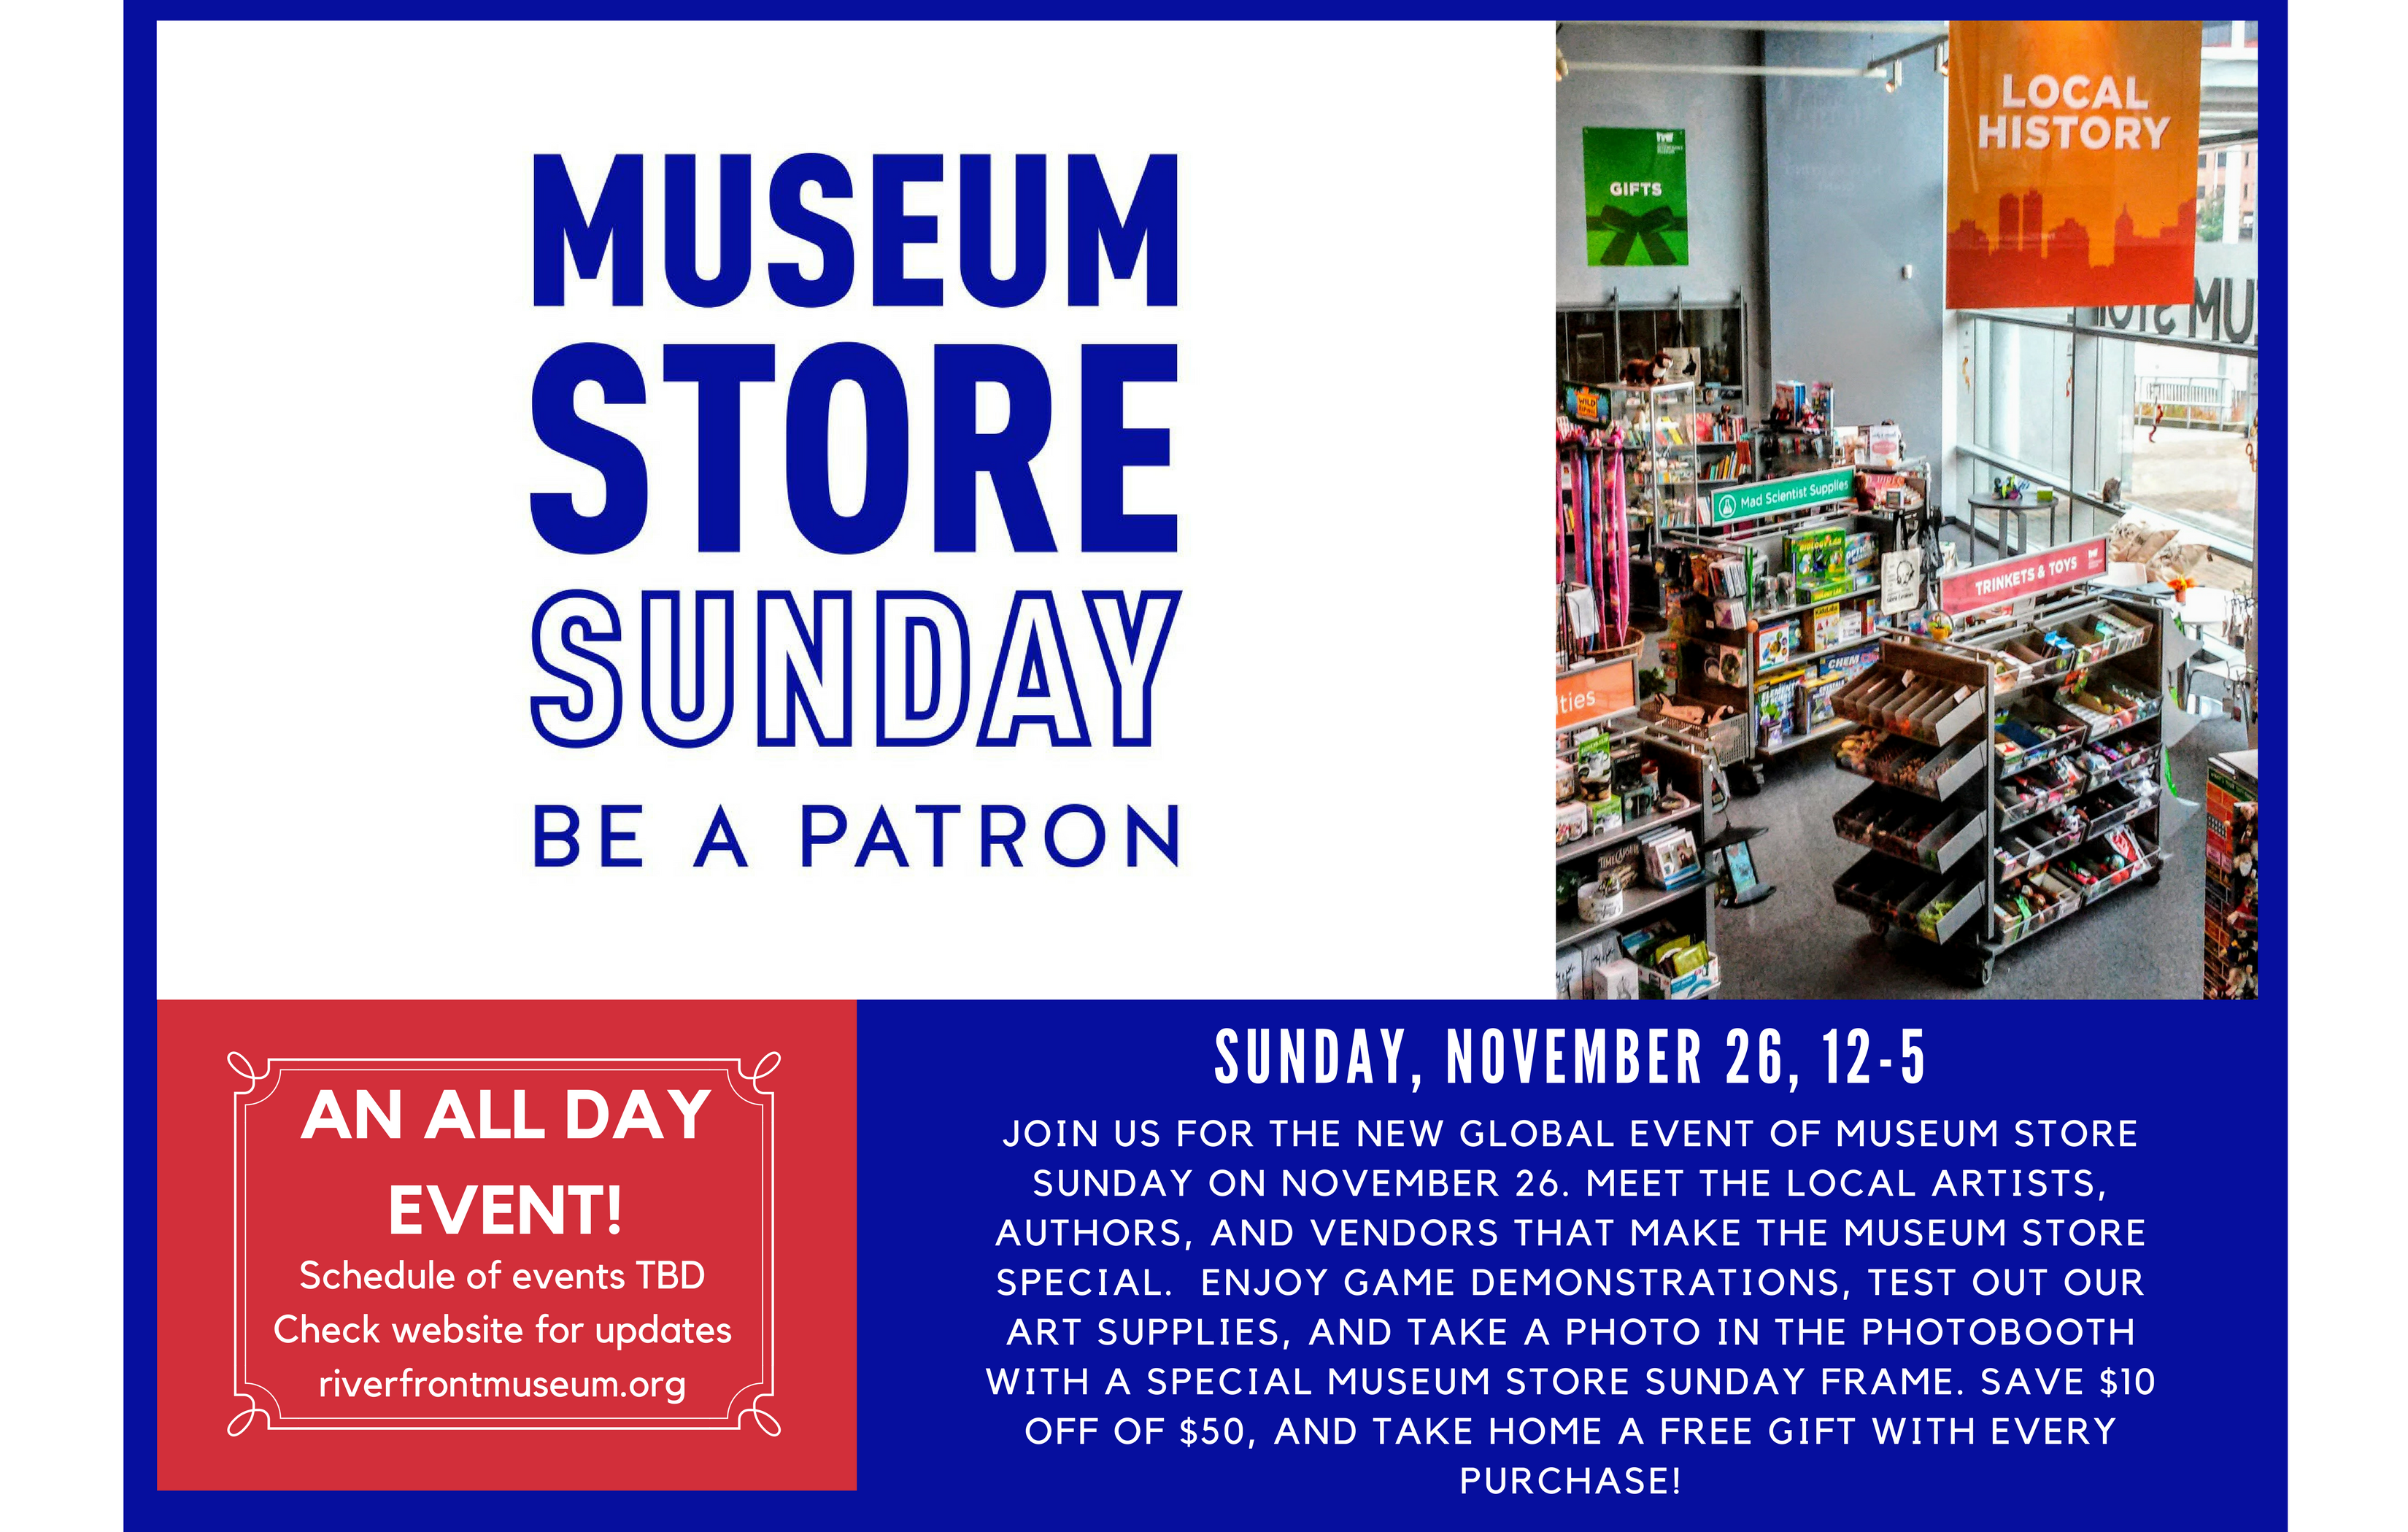 Join Us For The New Global Event Of Museum Store Sunday On November 26. Meet The Local Artists, Authors, And Vendors That Make The Museum Store Special. Enjoy Game Demonstrations, Test Out Our Art Supplies, And T (1)